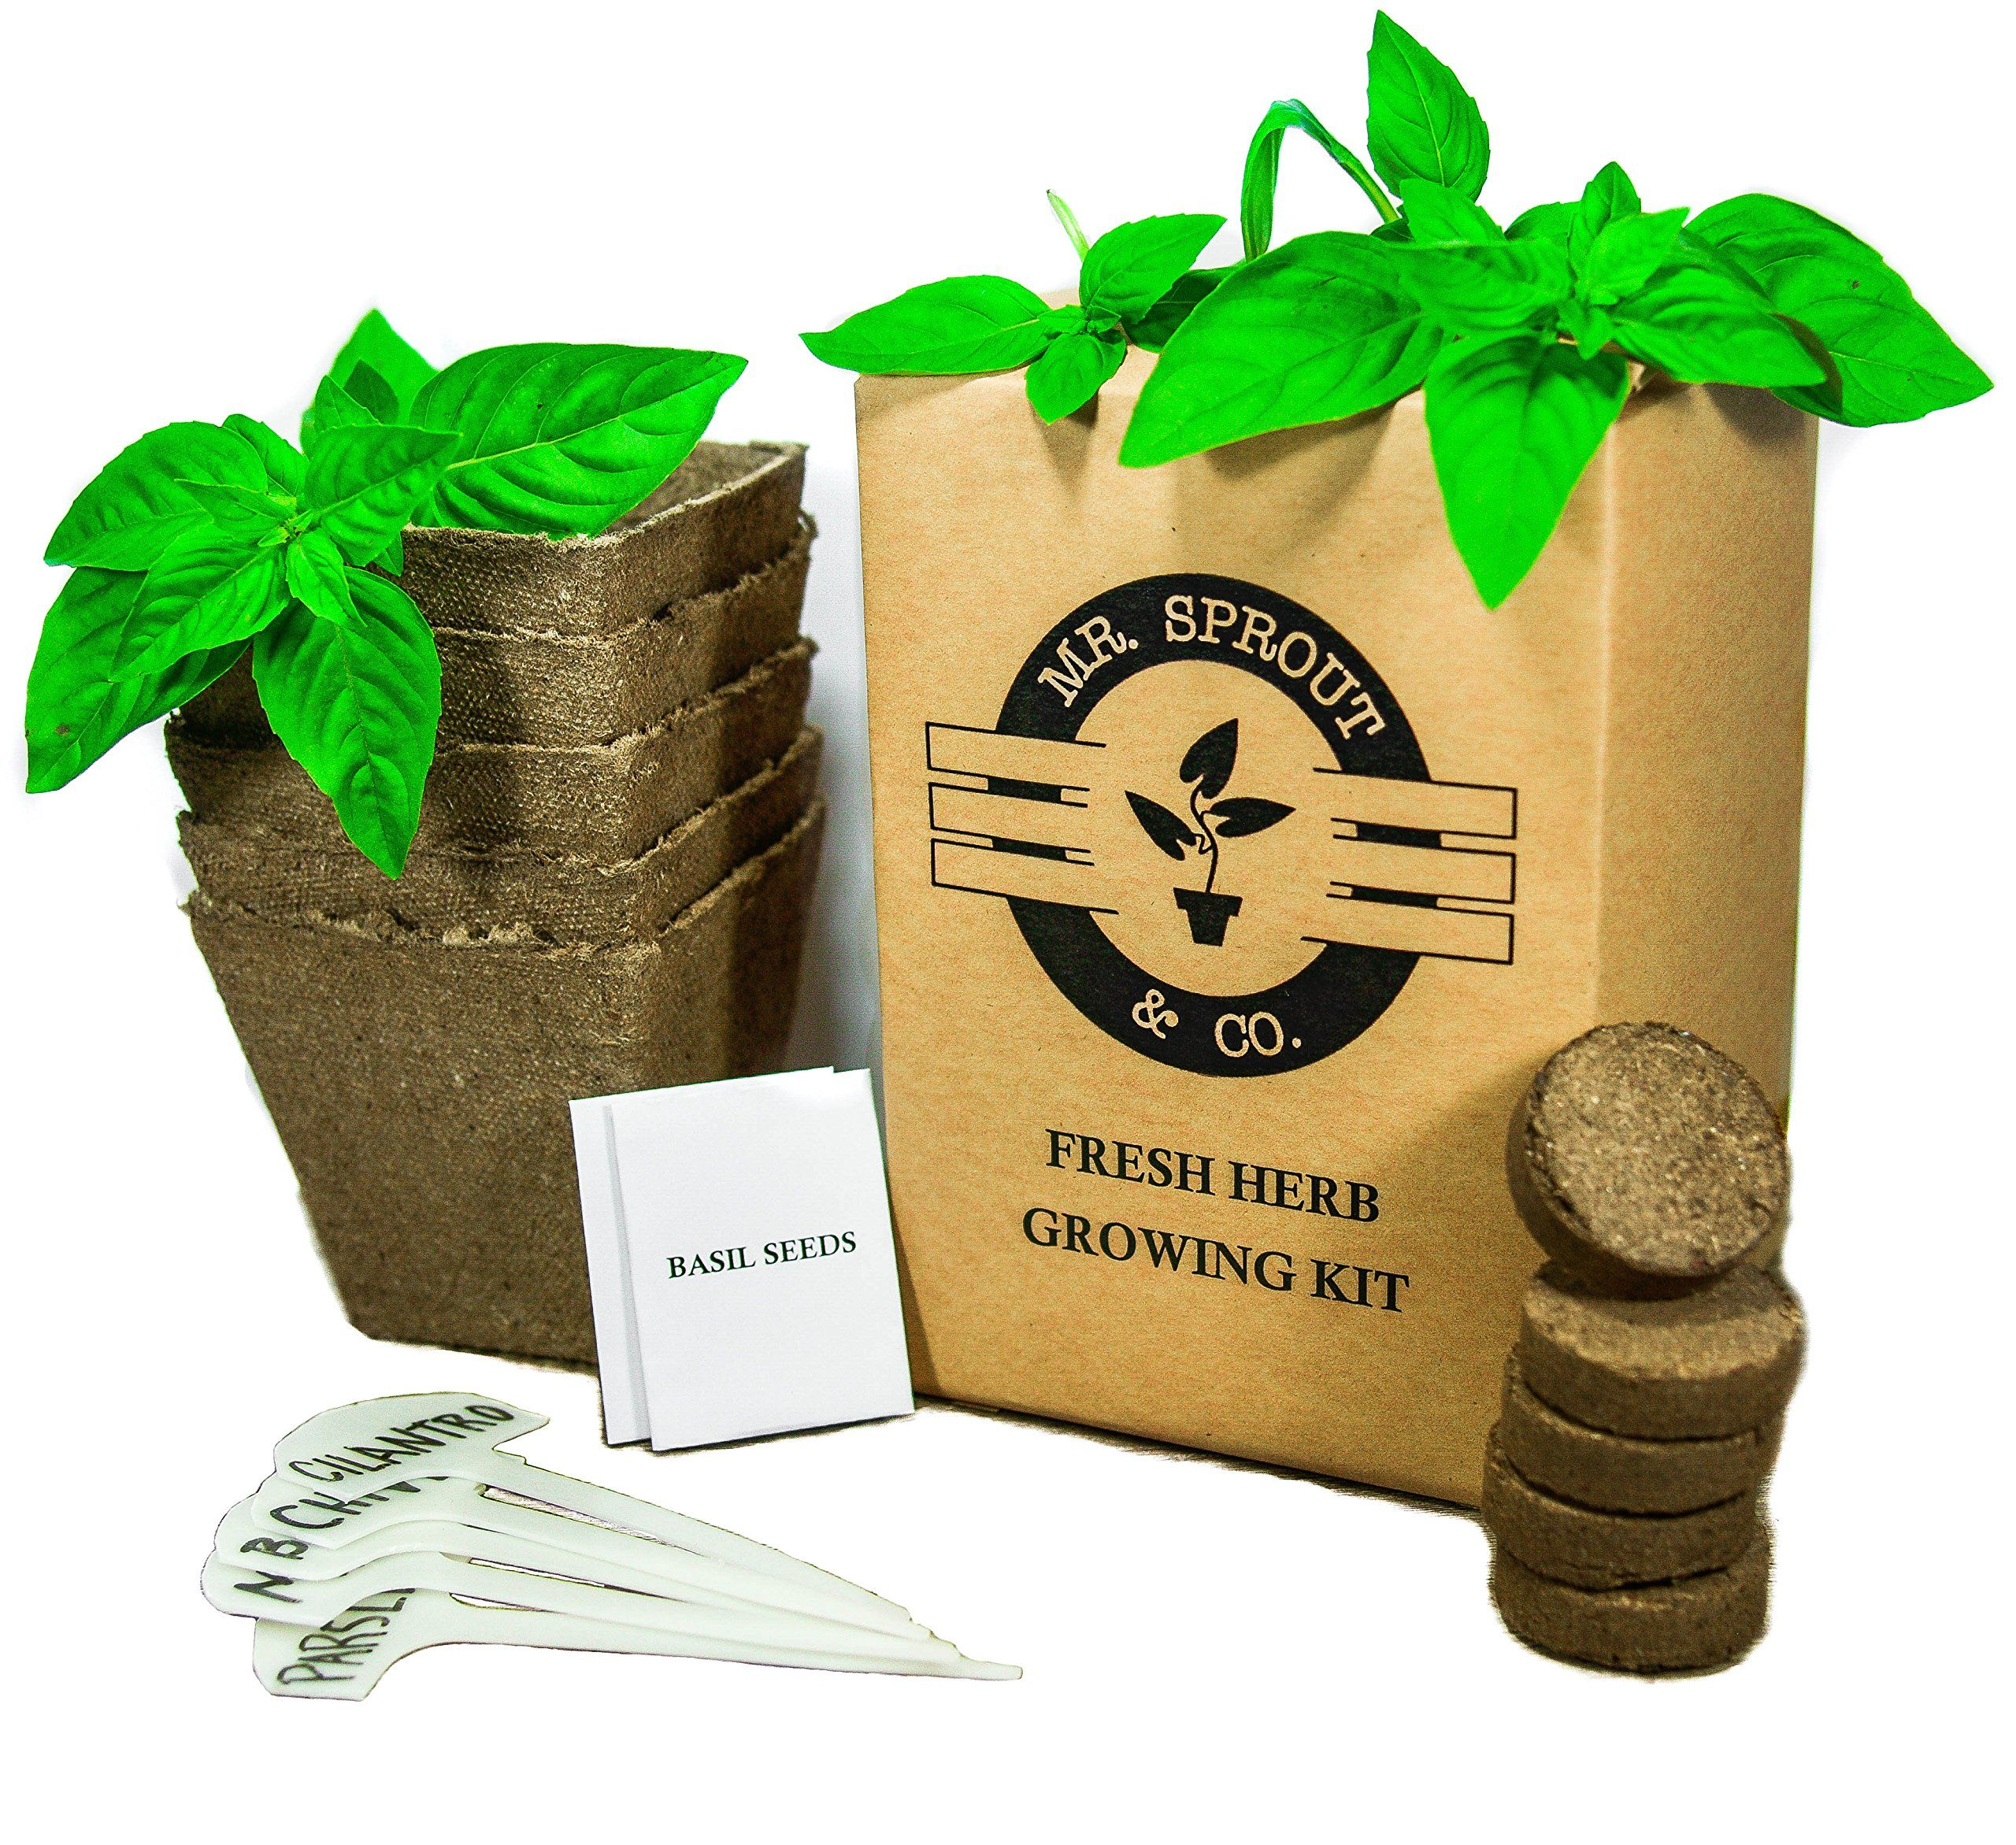 Charmant Mr. Sprout Organic Herb Kit: Seed Starter Kit   Easily Grow 5 Herbs With